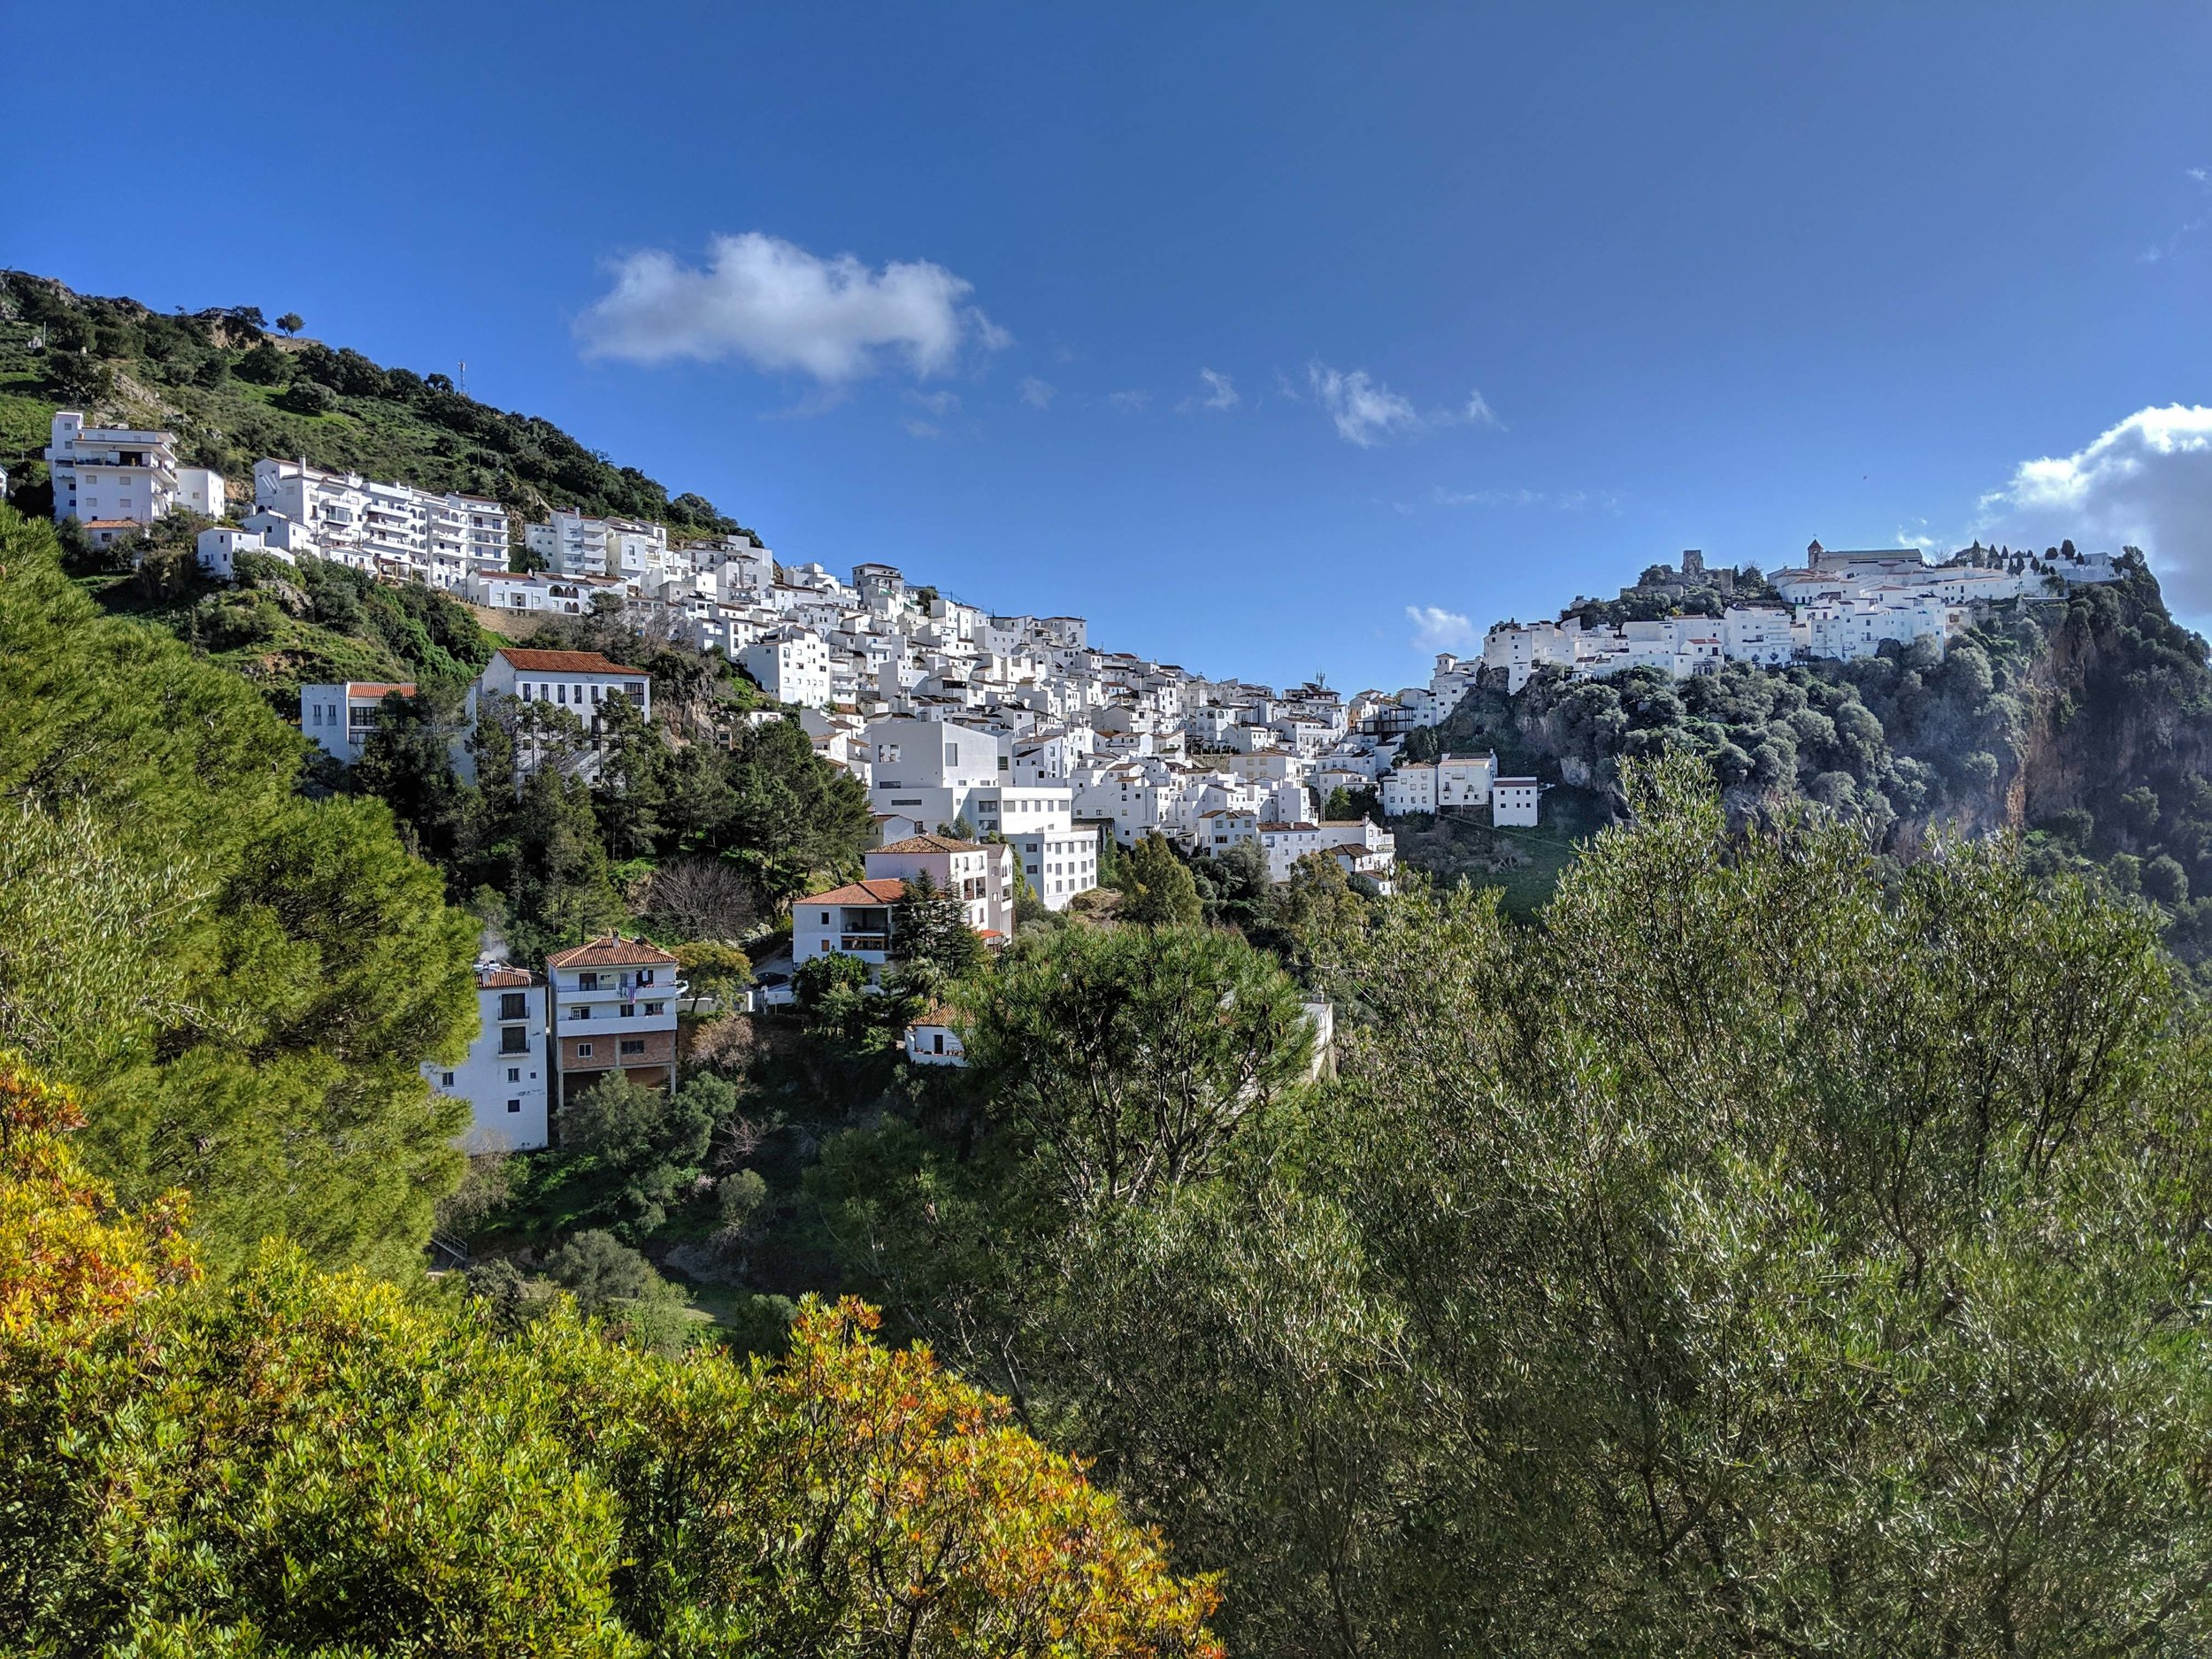 Picture perfect Casares